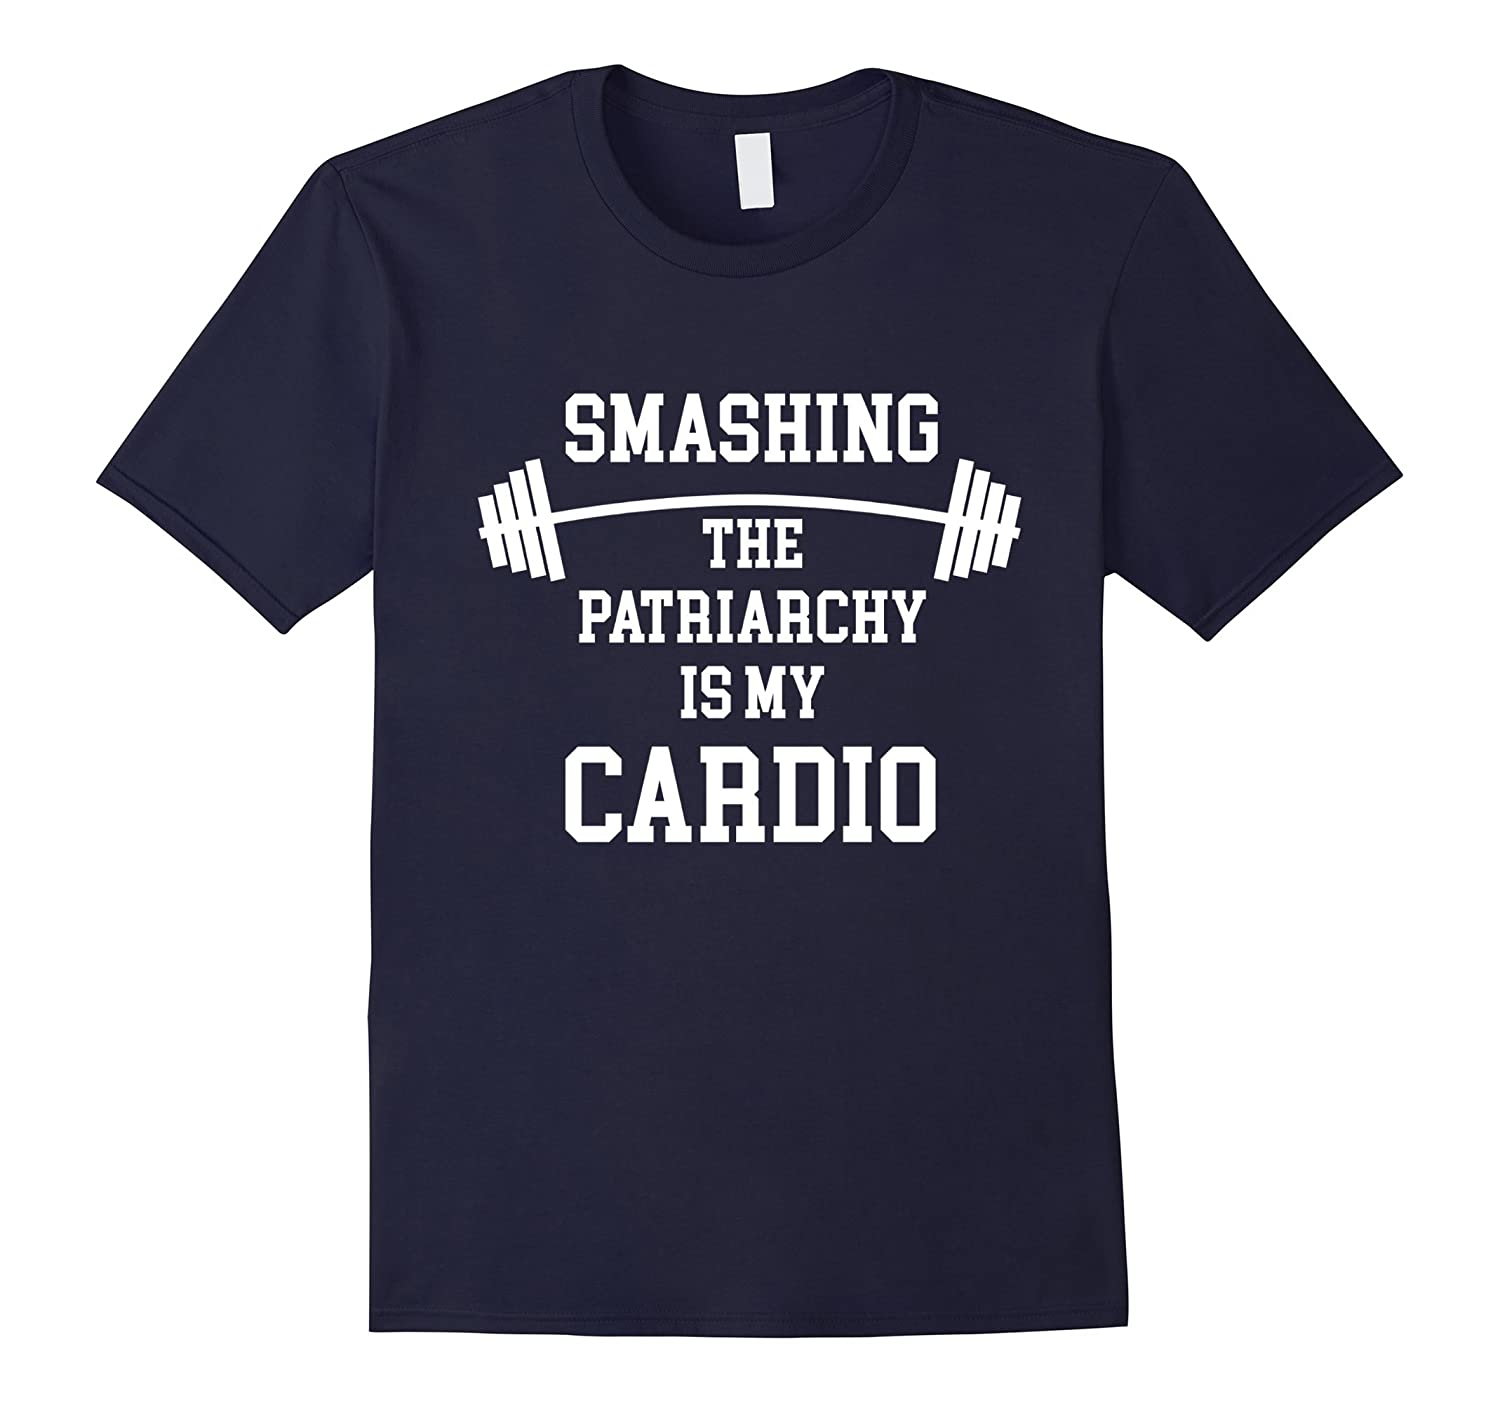 Smashing The Patriarchy Is My Cardio T-Shirt Funny Feminist